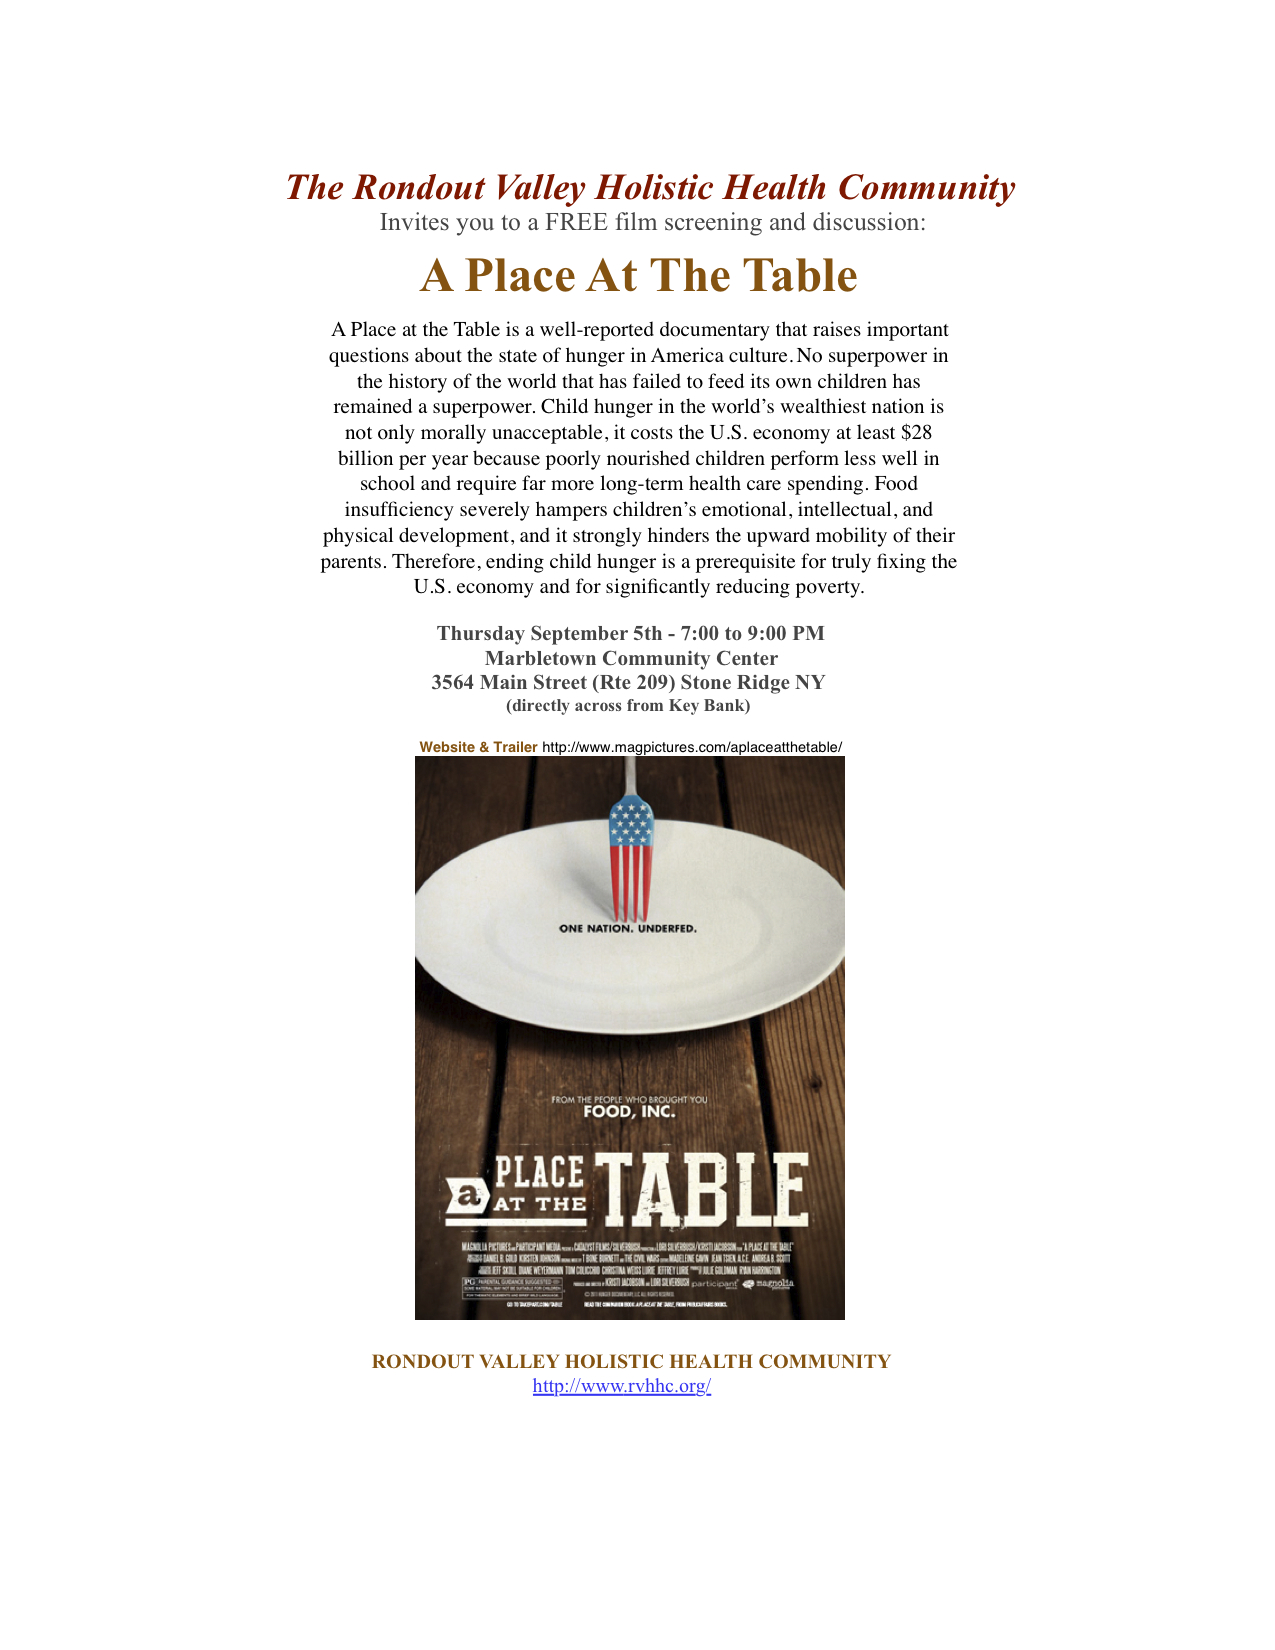 a_place_at_the_table